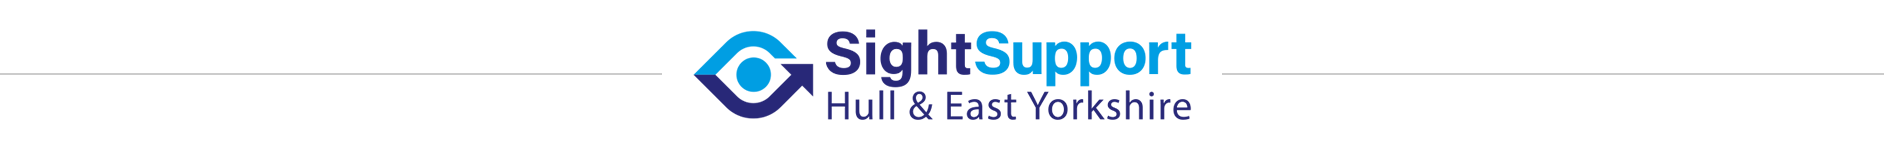 Sight & Support Case Study Logo